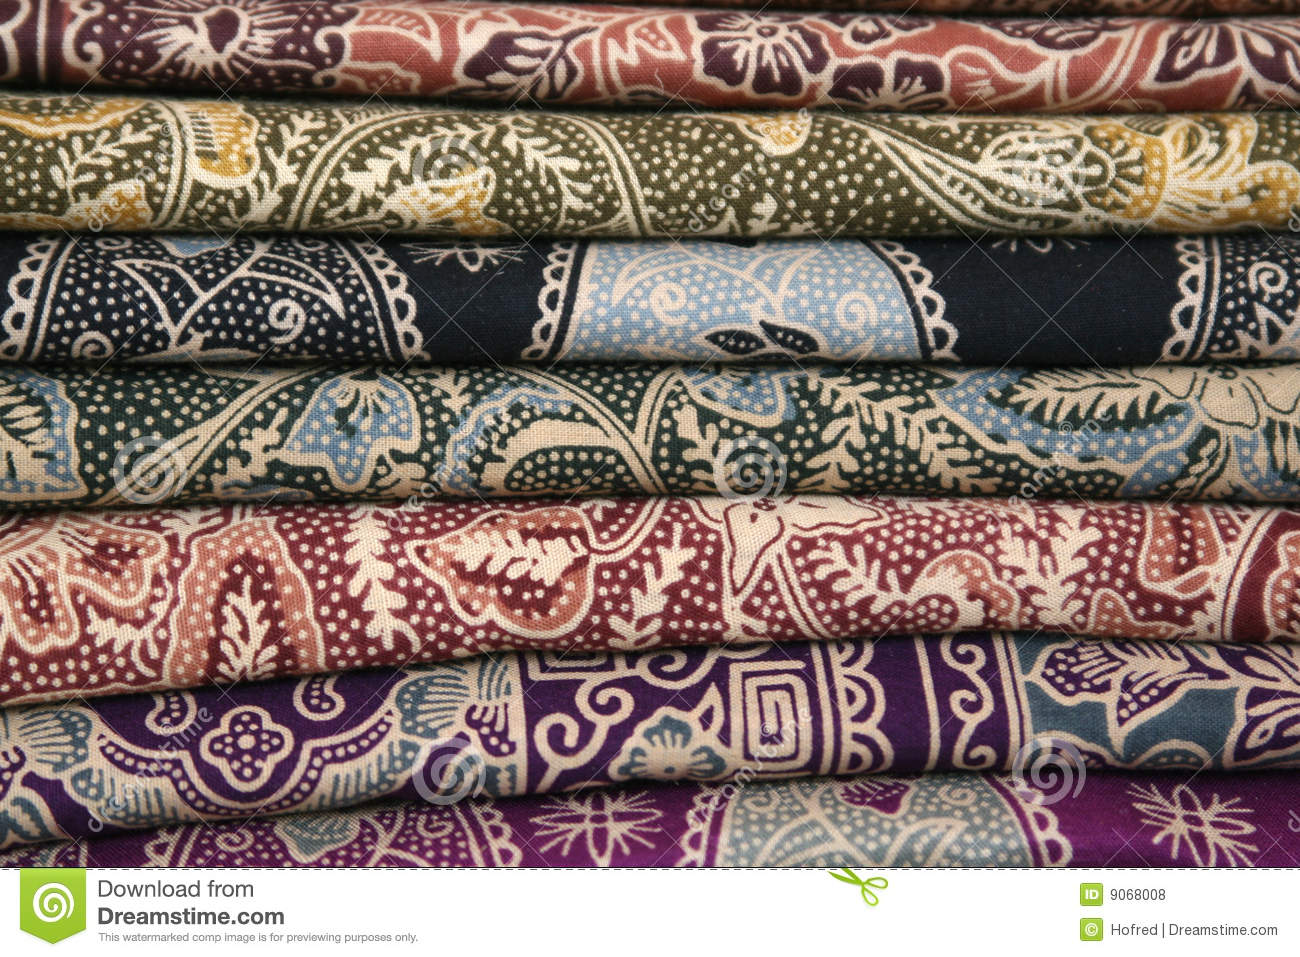 Background batik pattern stock photography image 803022 - Background Batik Pattern Batik Clothes Royalty Free Stock Photos